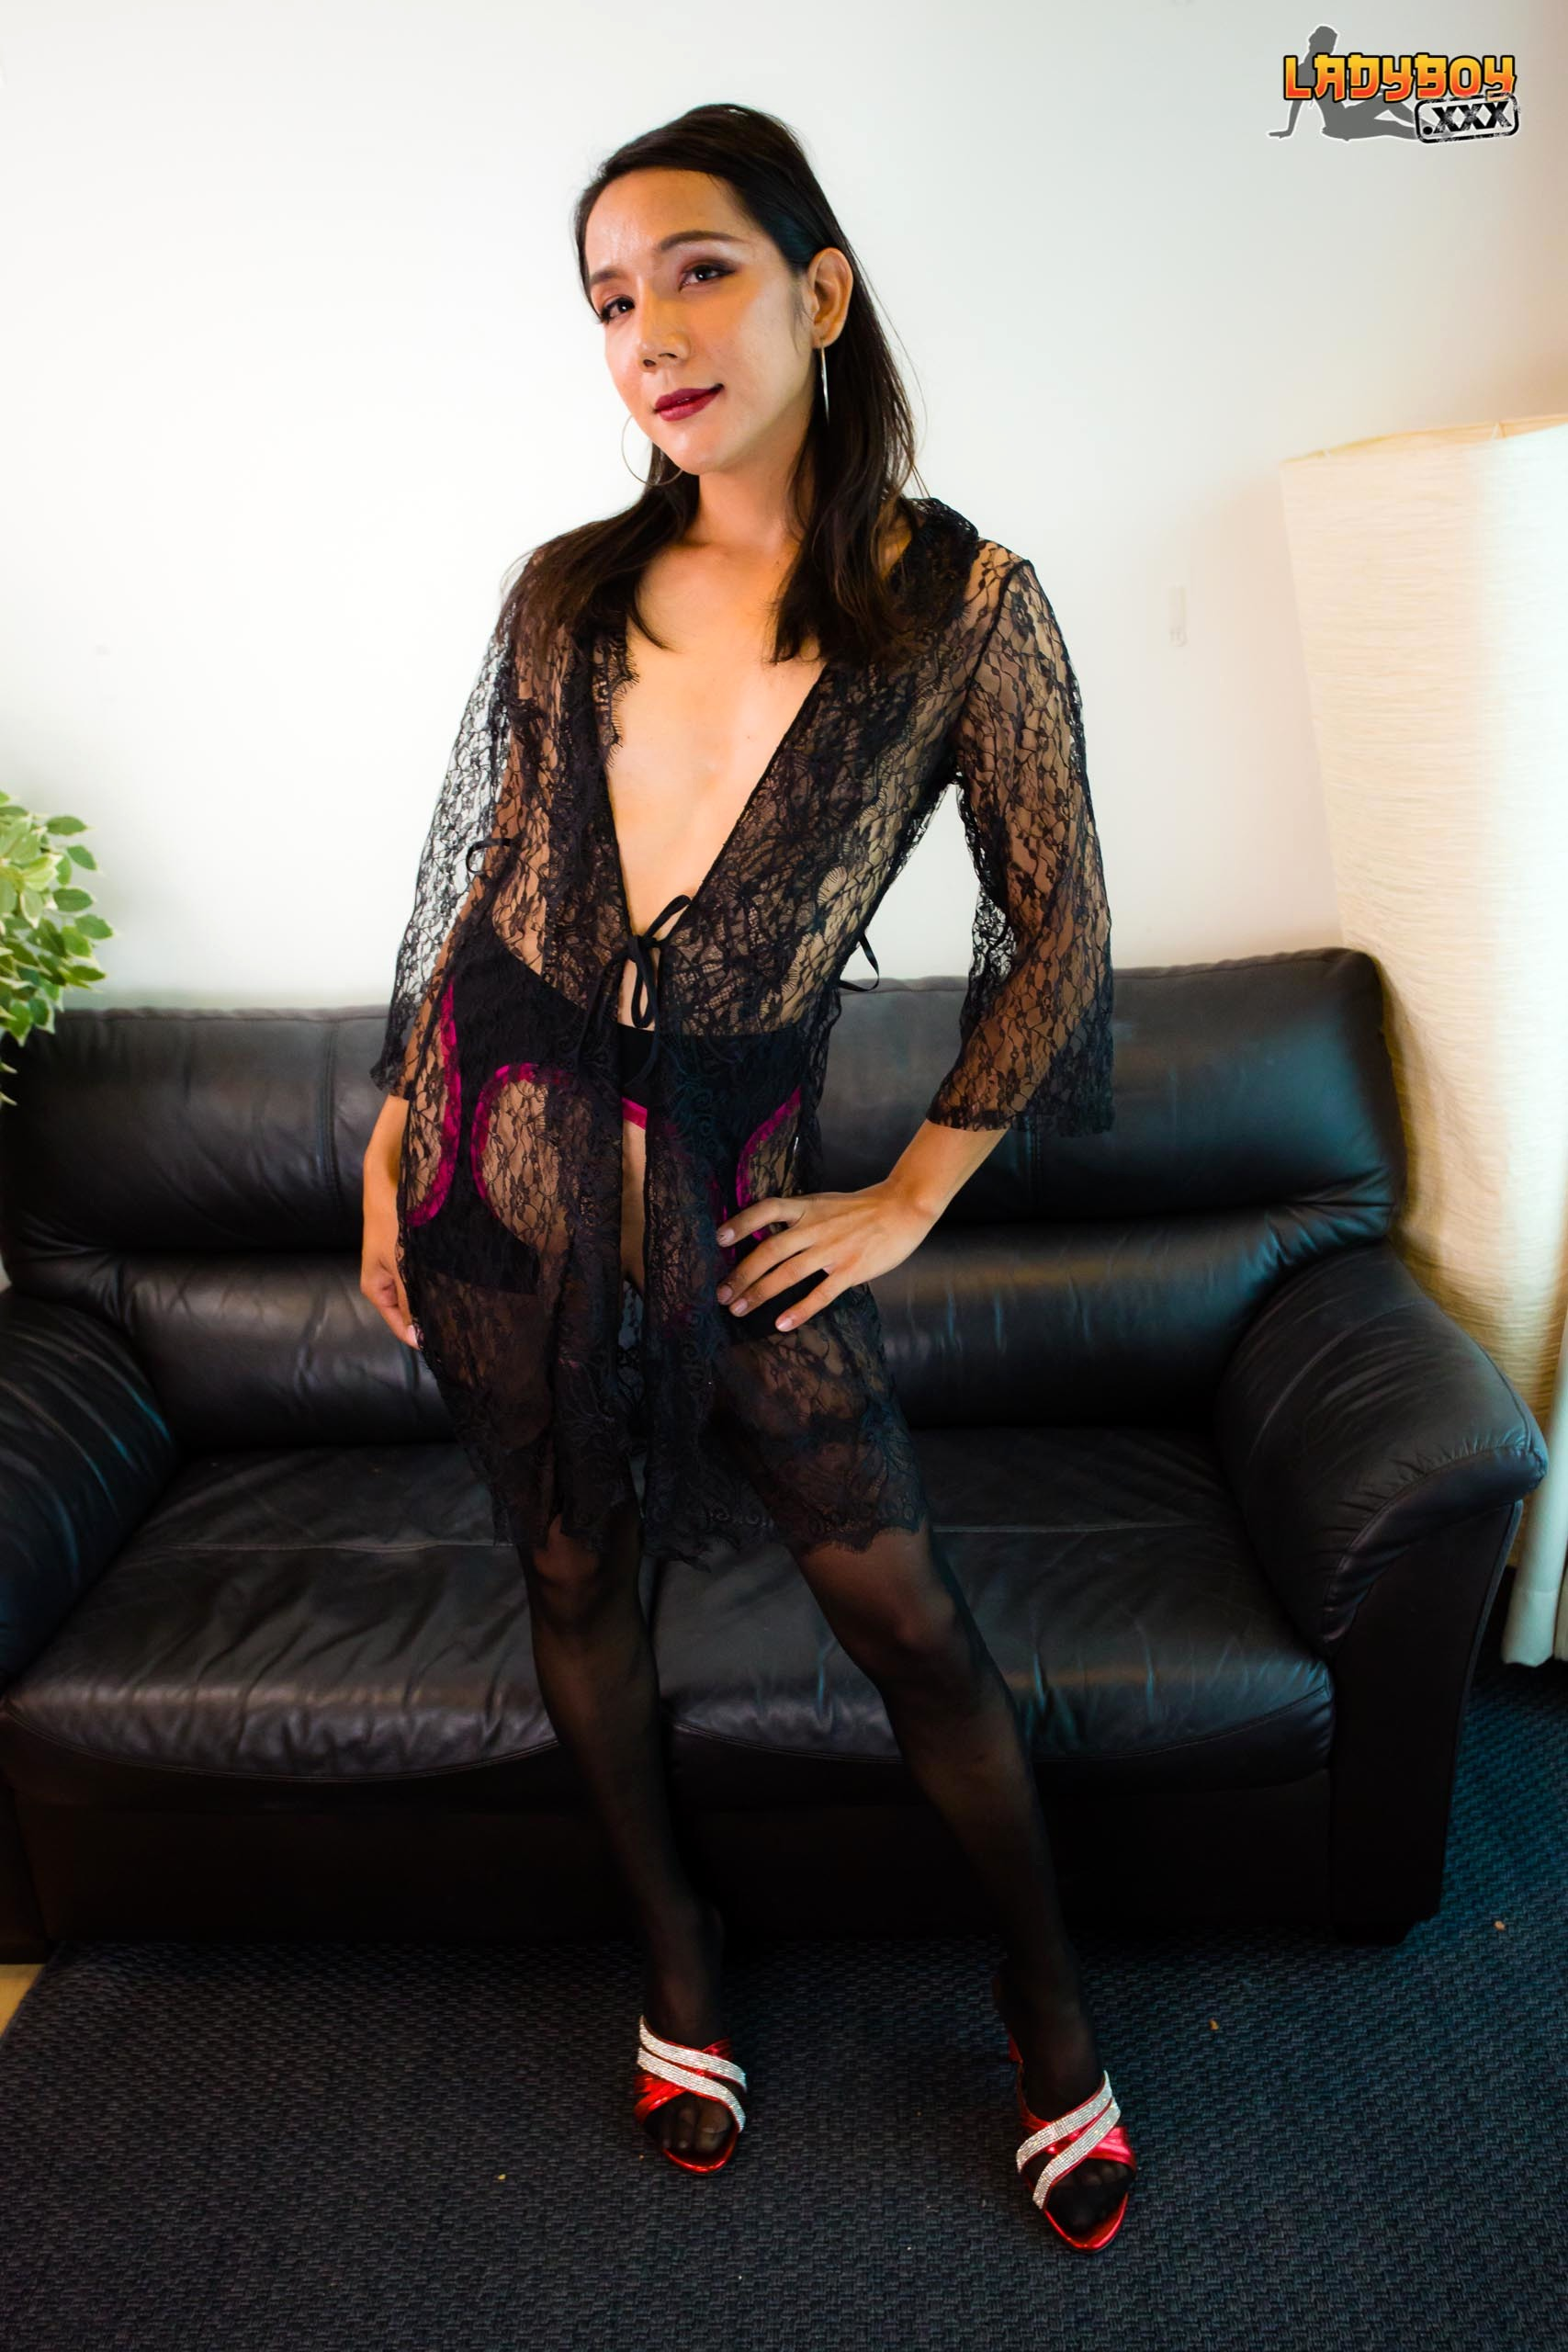 Pap Arousing In Fishnets! - Balls On Dolls